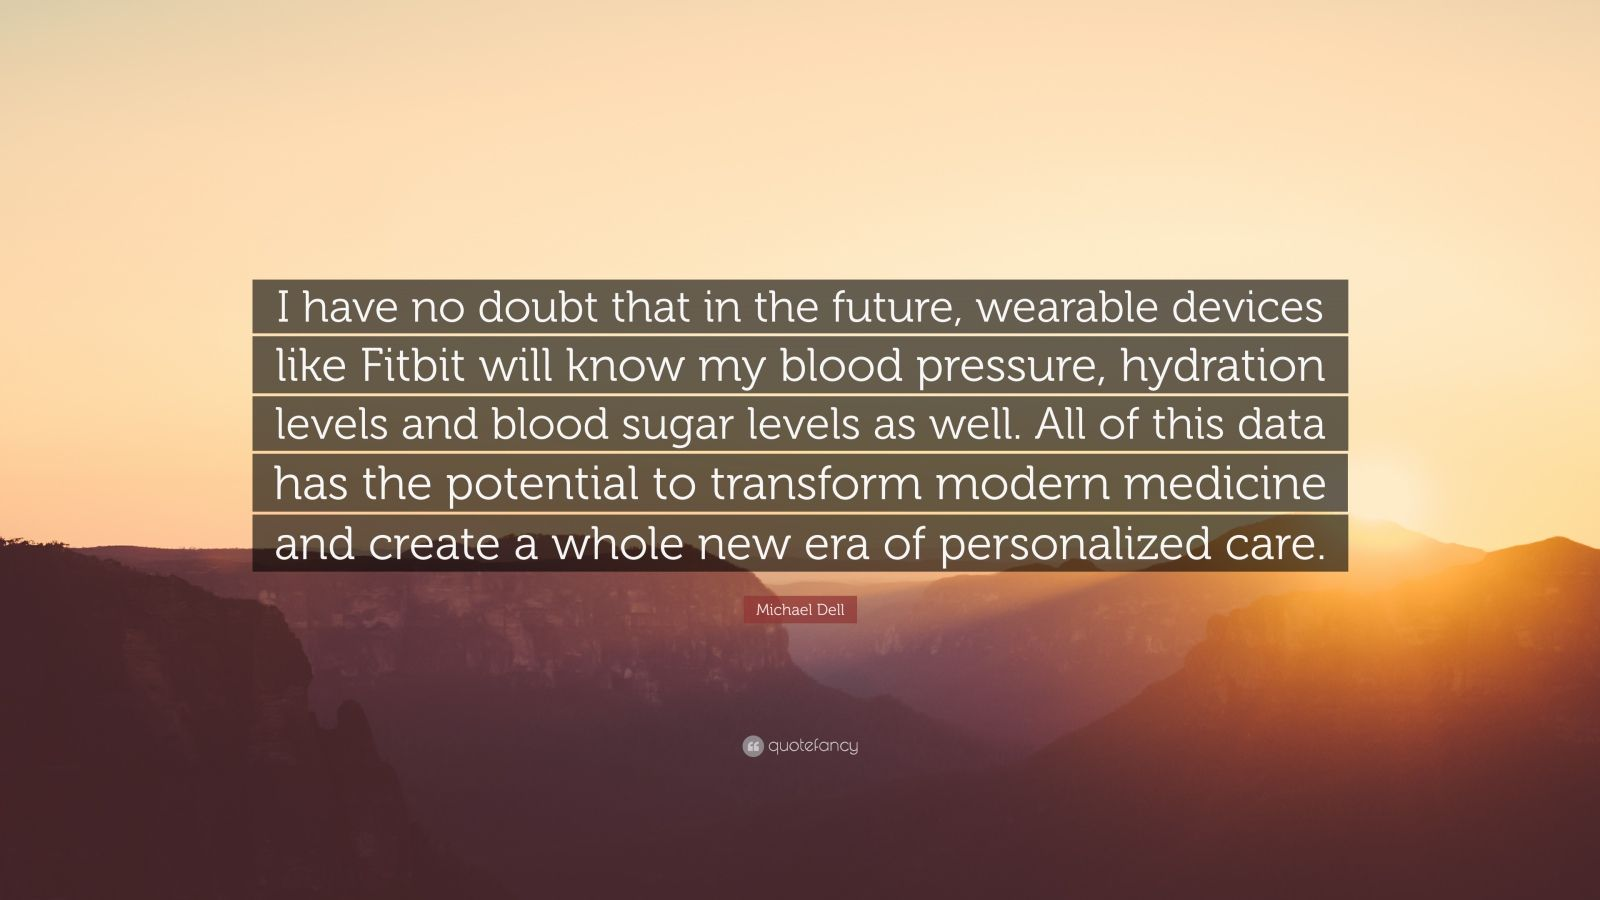 """Michael Dell Quote: """"I have no doubt that in the future, wearable devices like Fitbit will know my blood pressure, hydration levels and blood sugar levels as well. All of this data has the potential to transform modern medicine and create a whole new era of personalized care."""""""